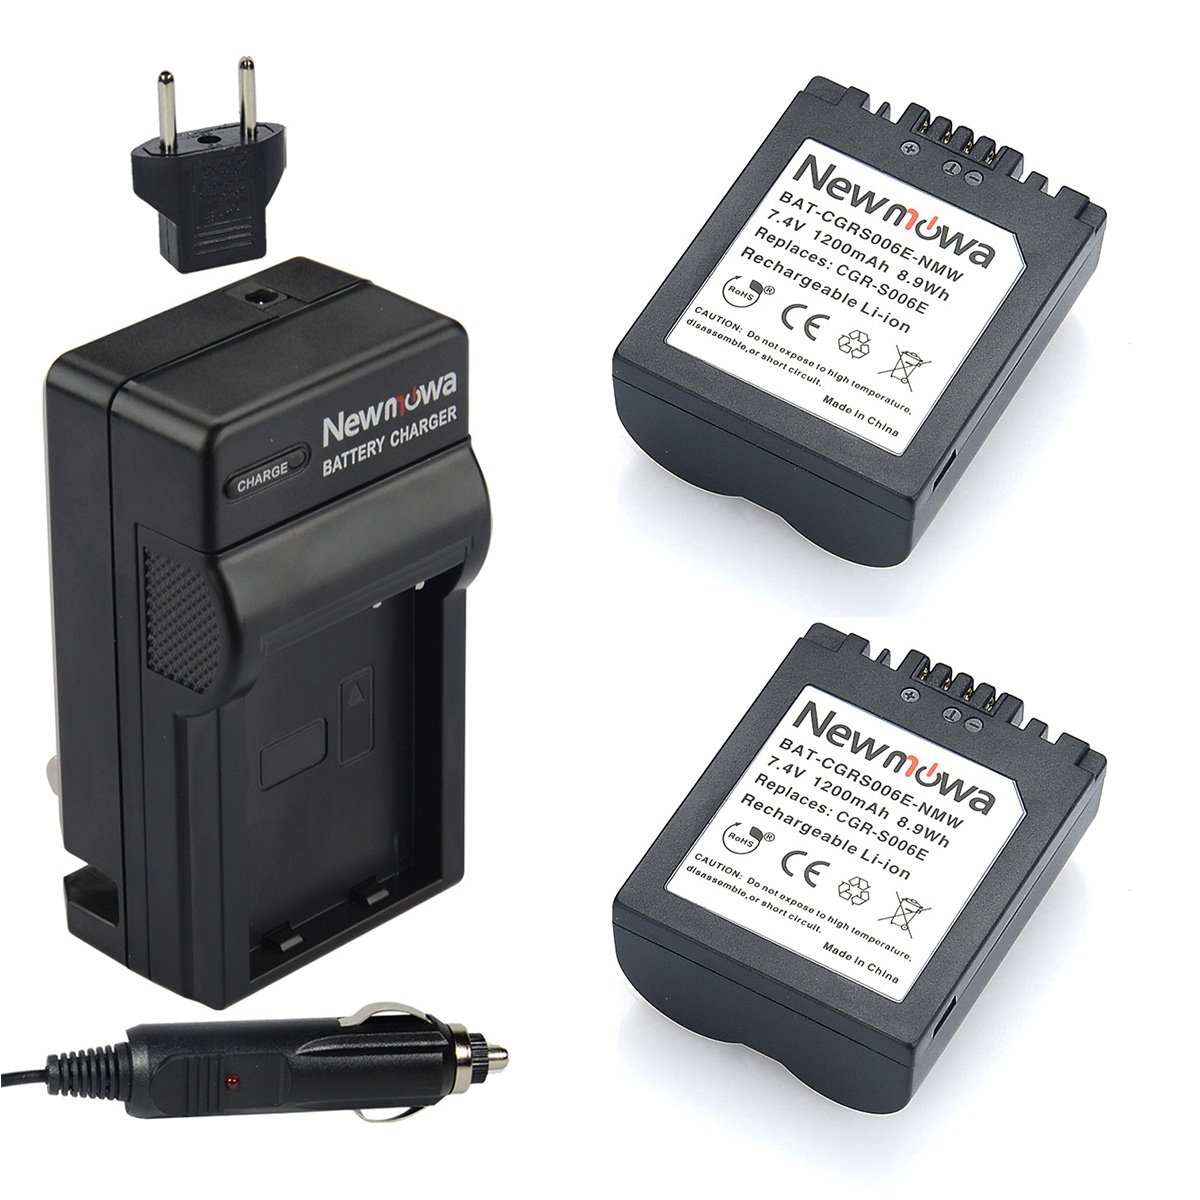 Newmowa S006 Battery (2-Pack) and Charger kit for Panasonic CGR-S006 CGR-S006E CGR-S006A/1B Equivalent Panasonic Battery and for LUMIX Digital Camera DMC-FZ50 DMC-FZ30K DMC-FZ30 FZ45 DMC-FZ7K DMC-FZ7S models